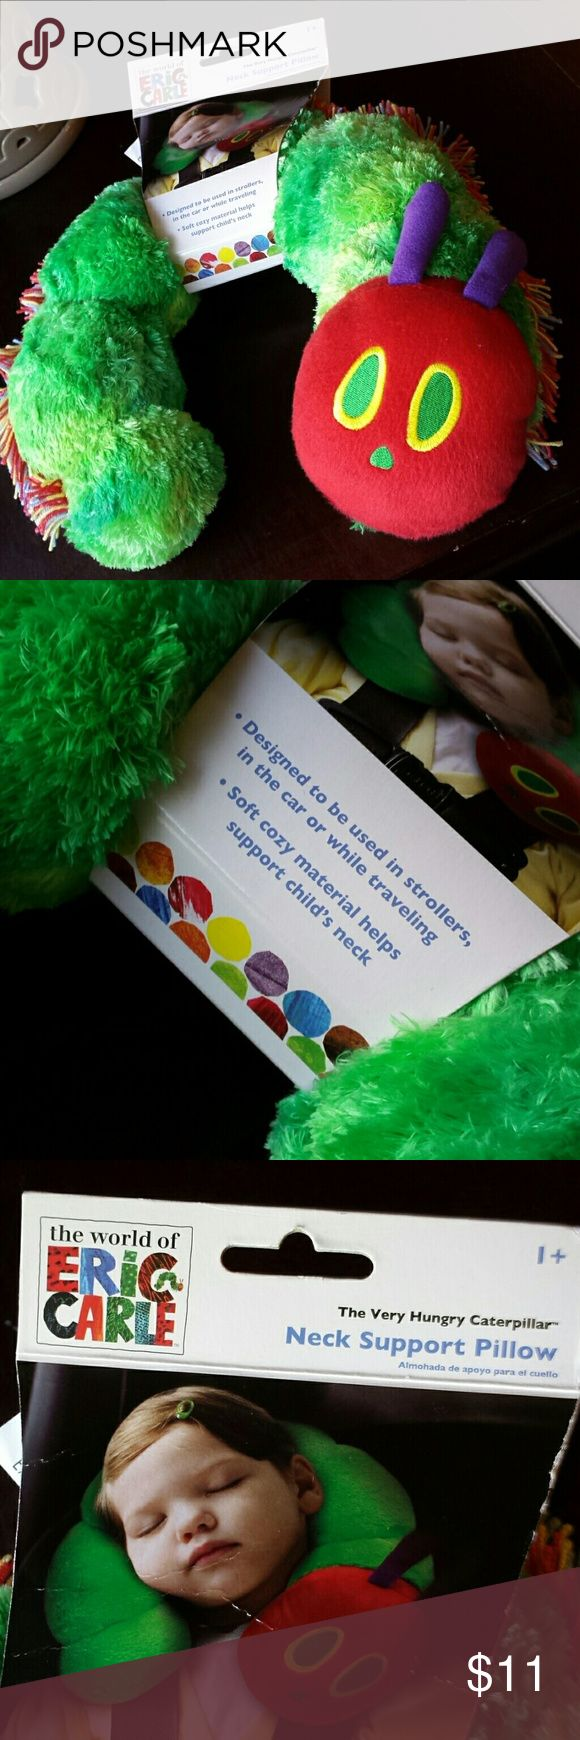 """Neck Support Pillow """"The Very Hungry Caterpillar"""" Its so soft and cozy. The colors are super vibrant! New never used. New!! Eric Carle Other"""